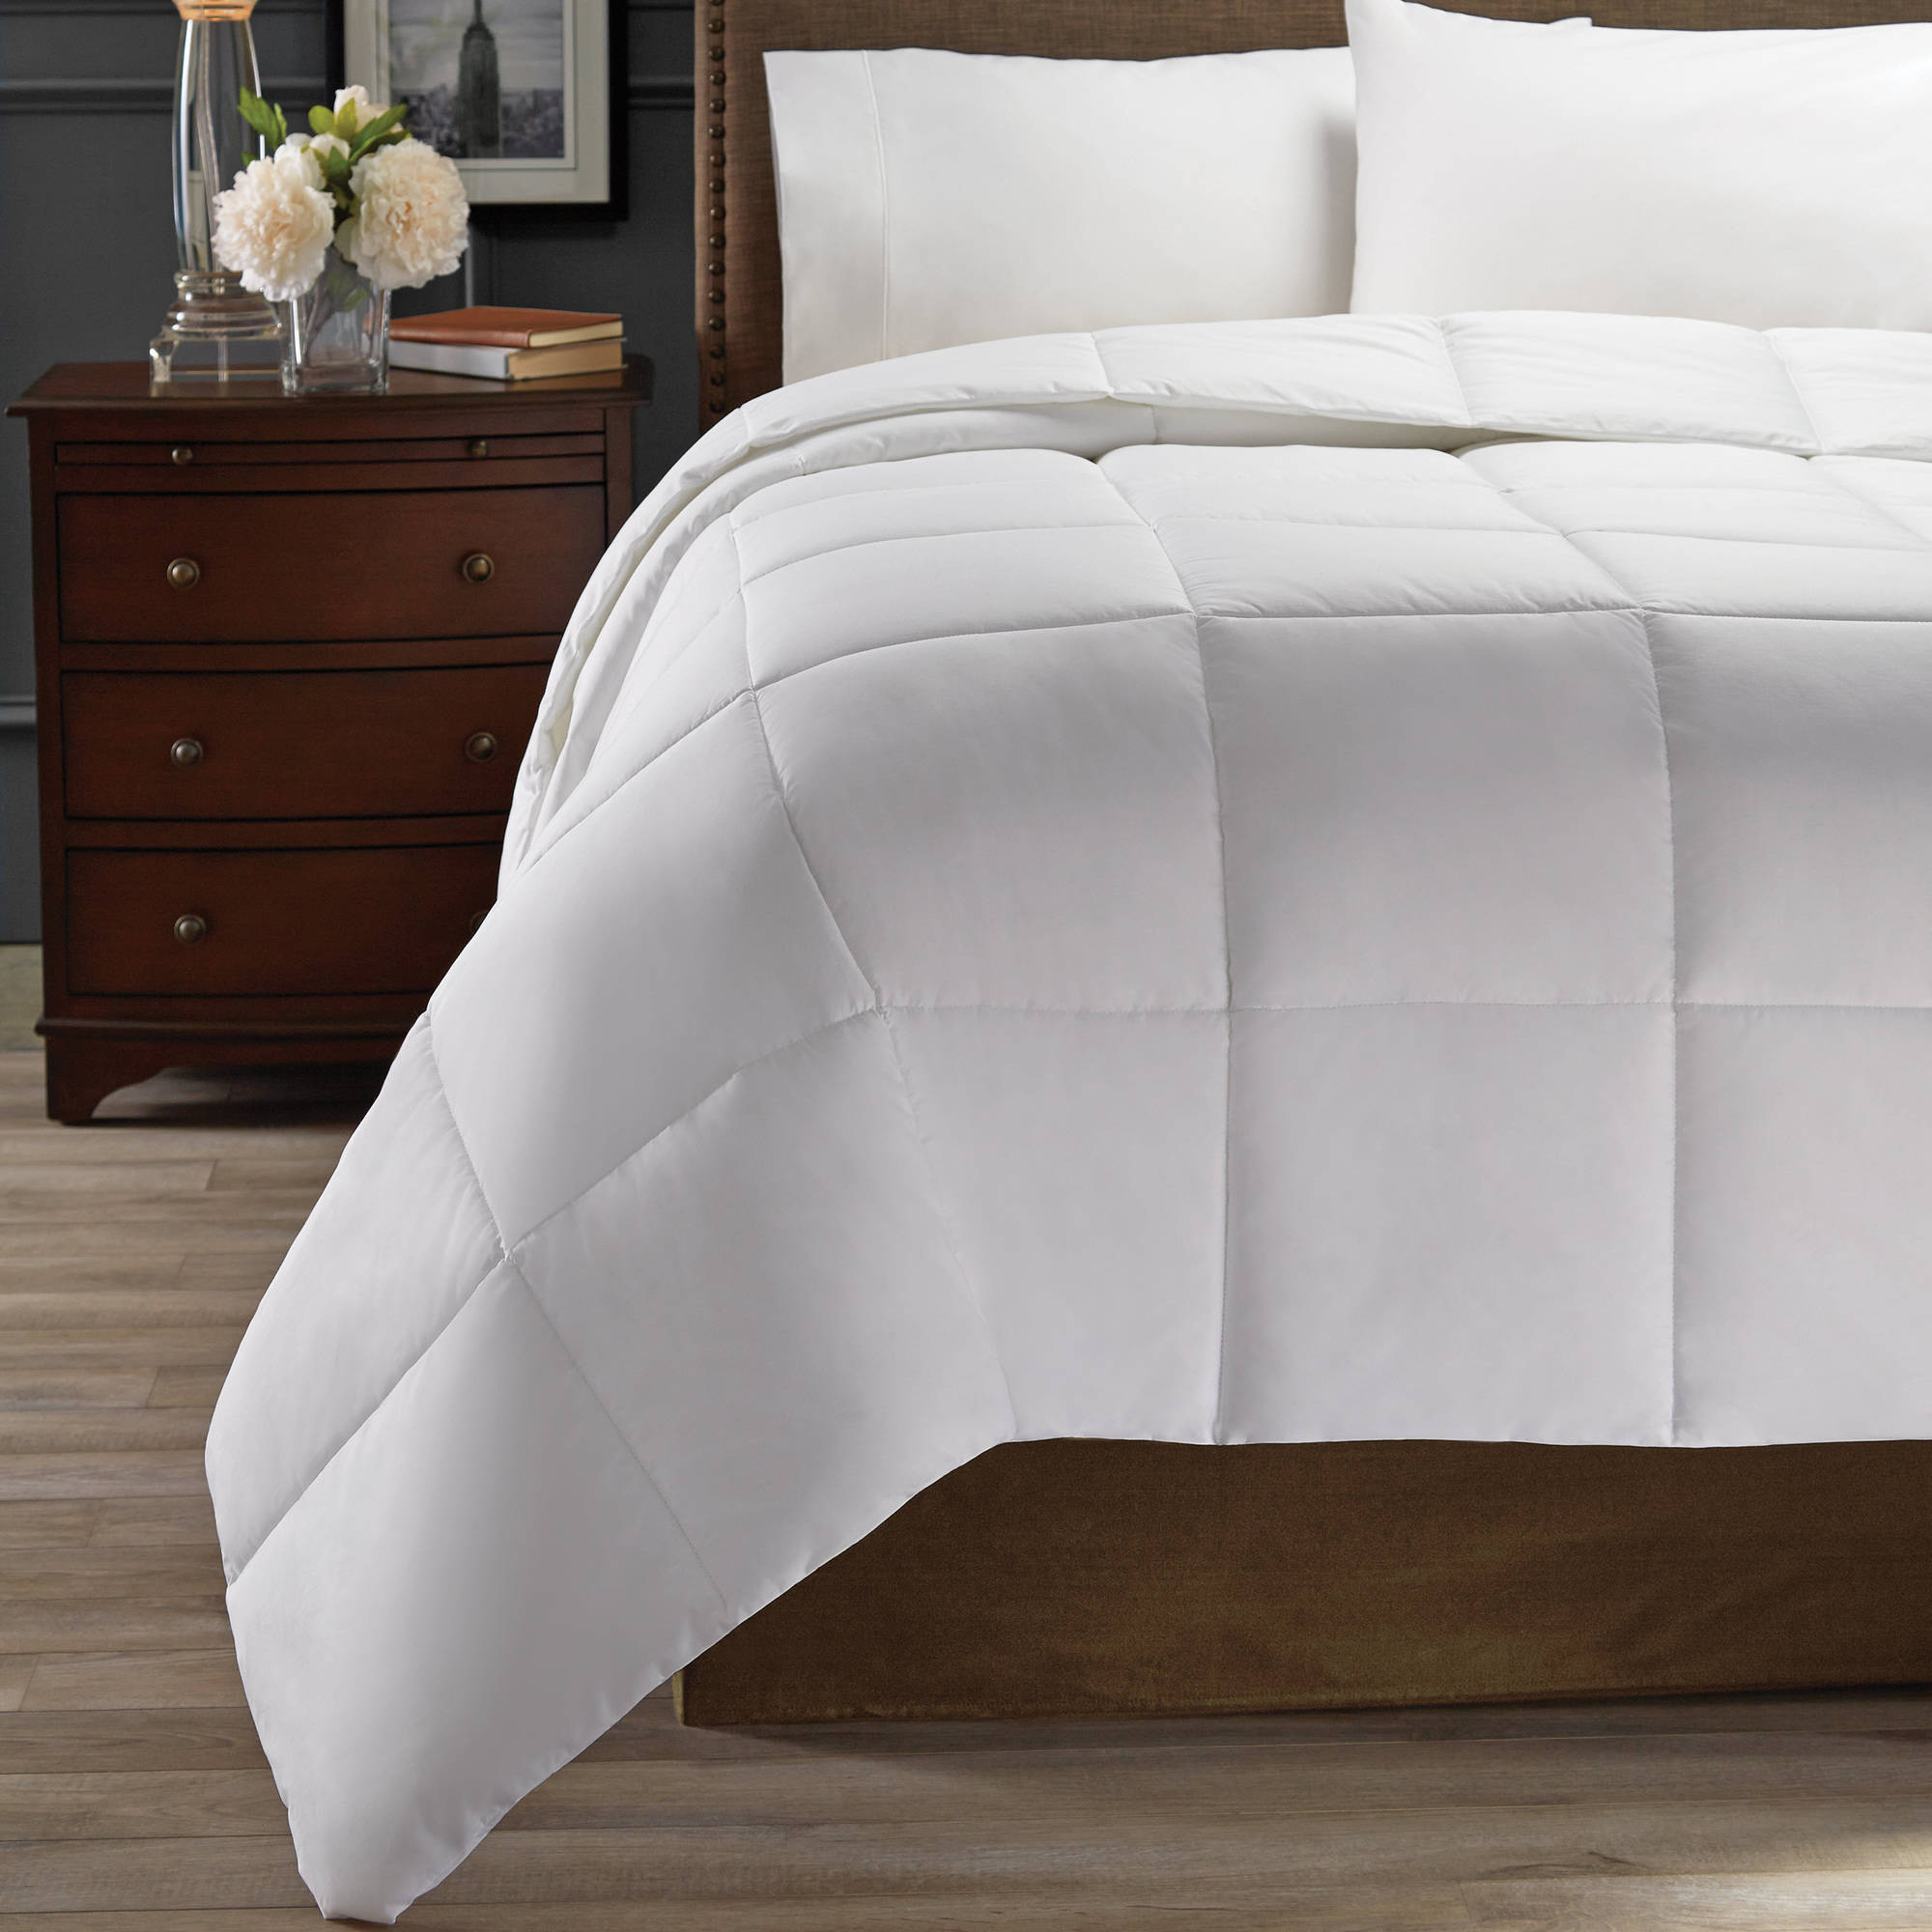 alternative reviews home all at grand bath hotel collection season wayfair luxury comforter mgm pdx bed down